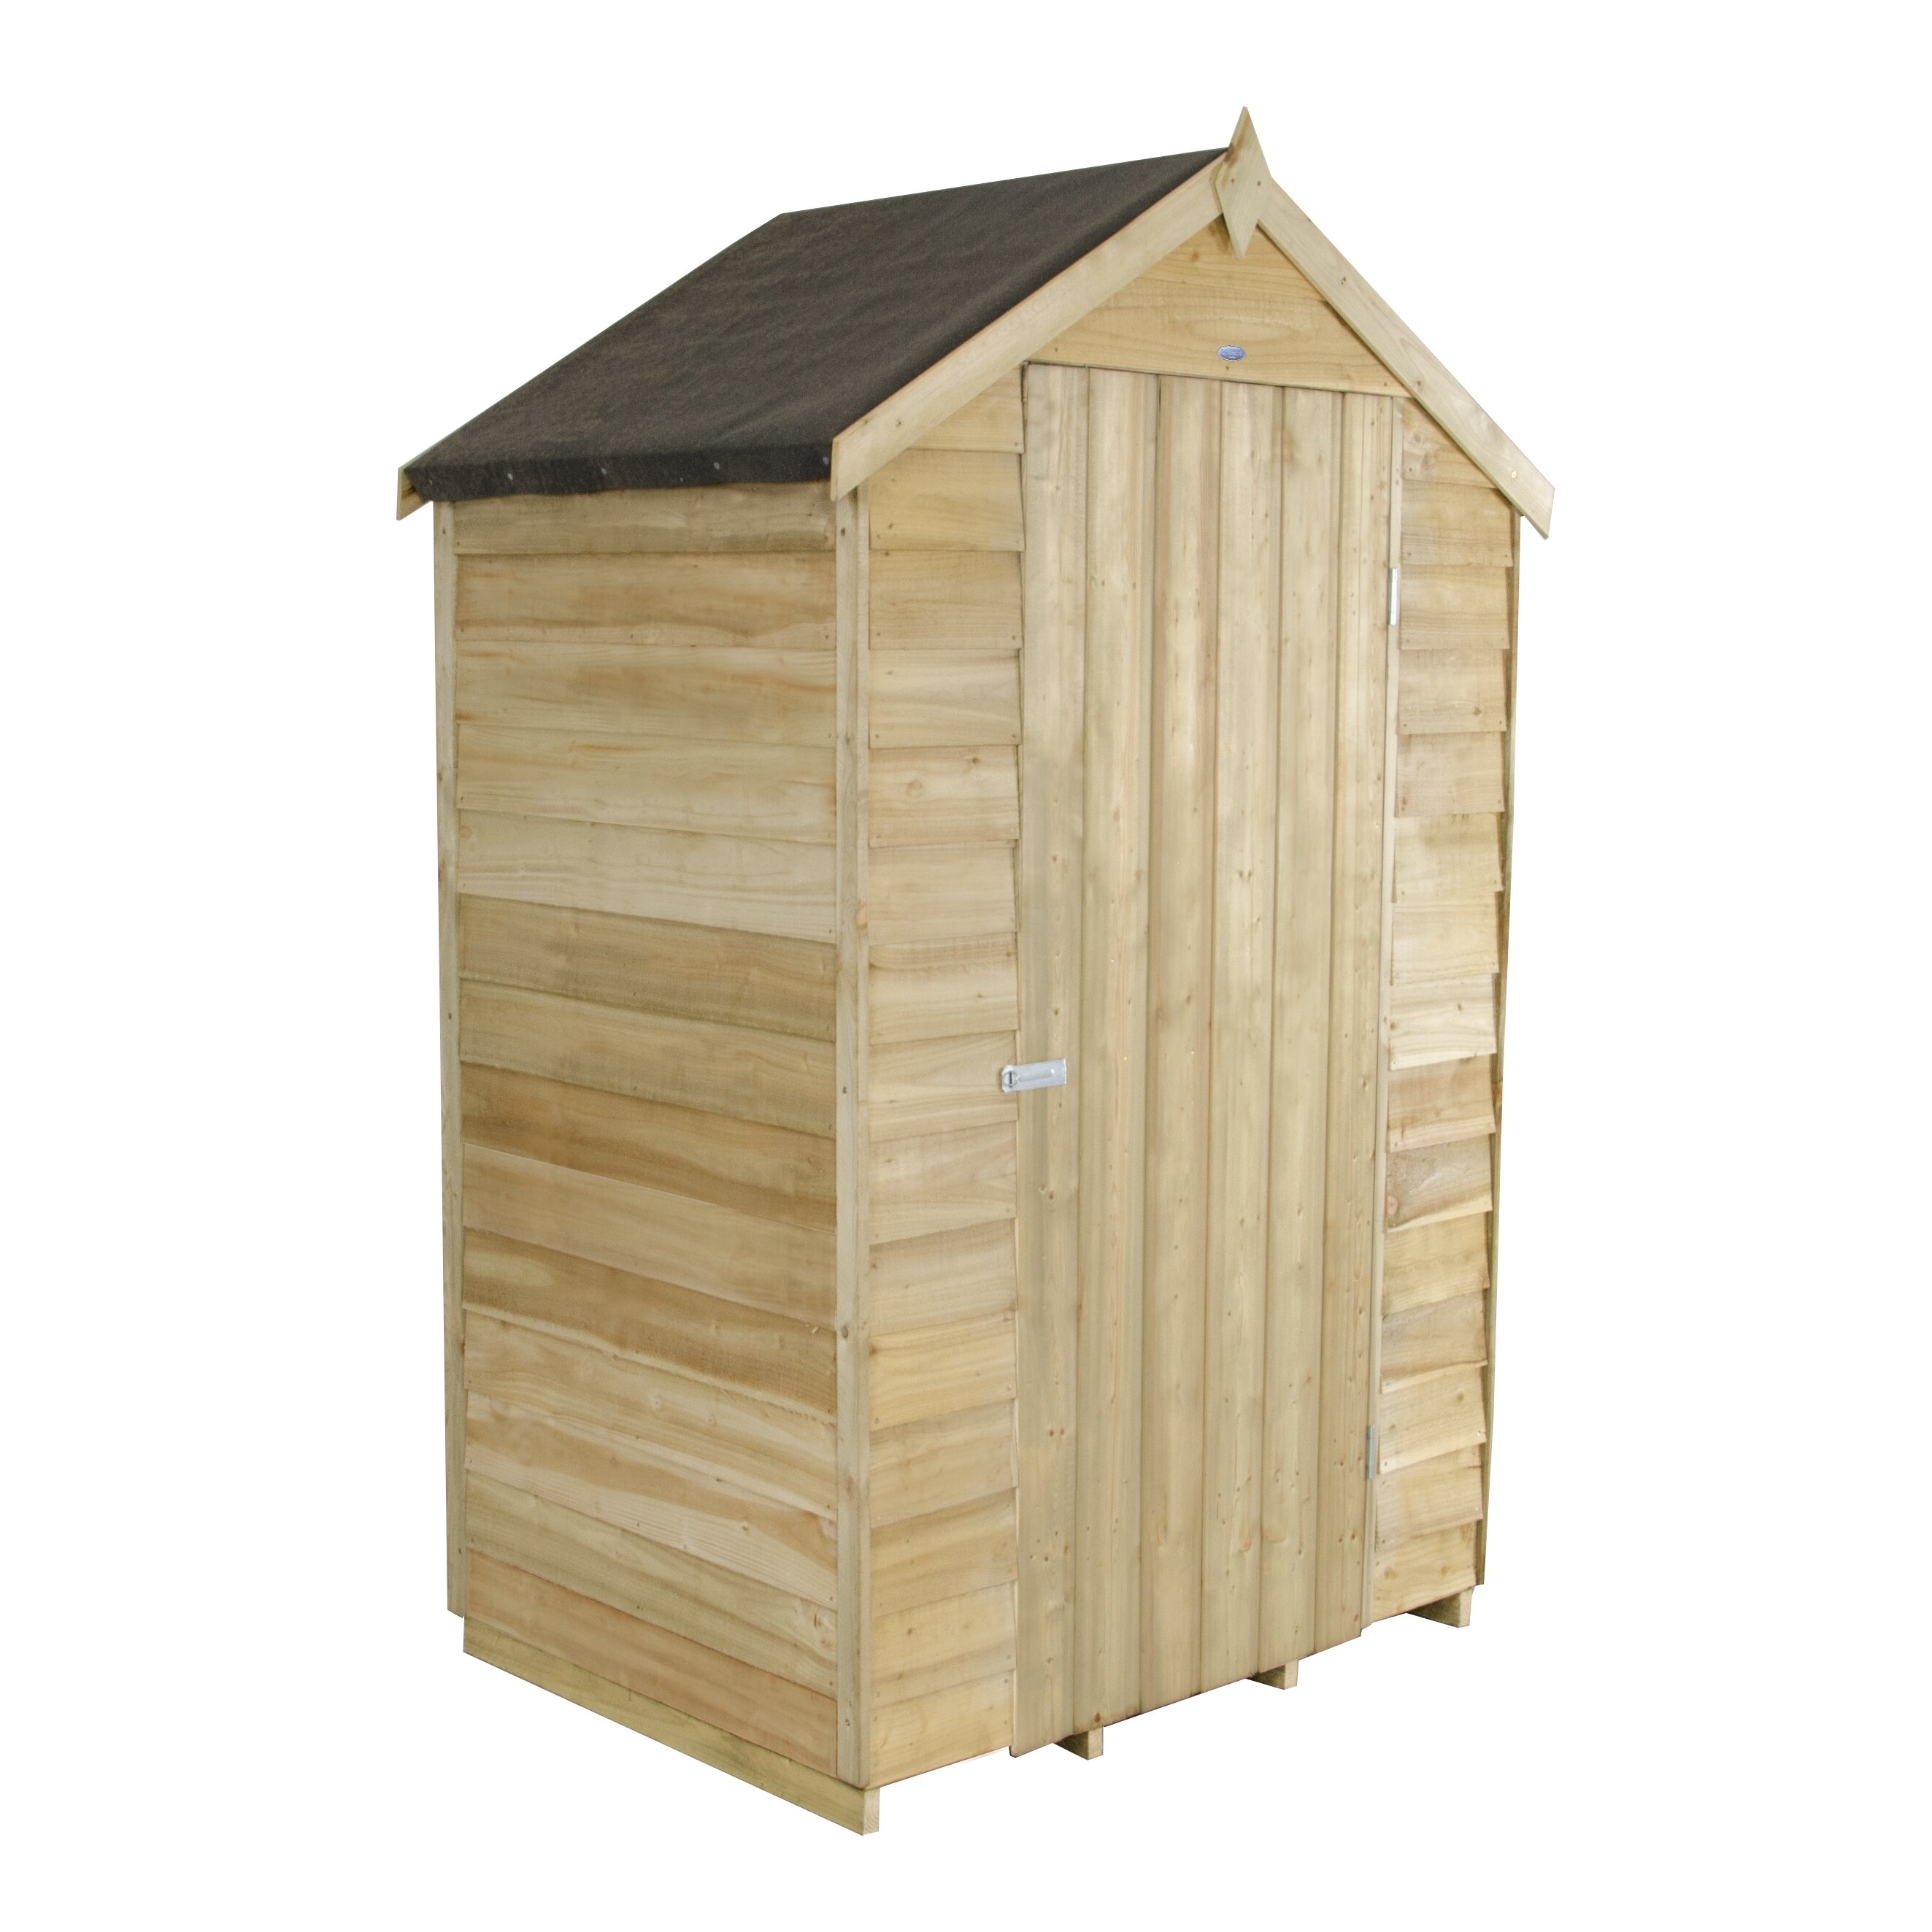 forest garden 4 x 3 wooden storage shed wayfair uk